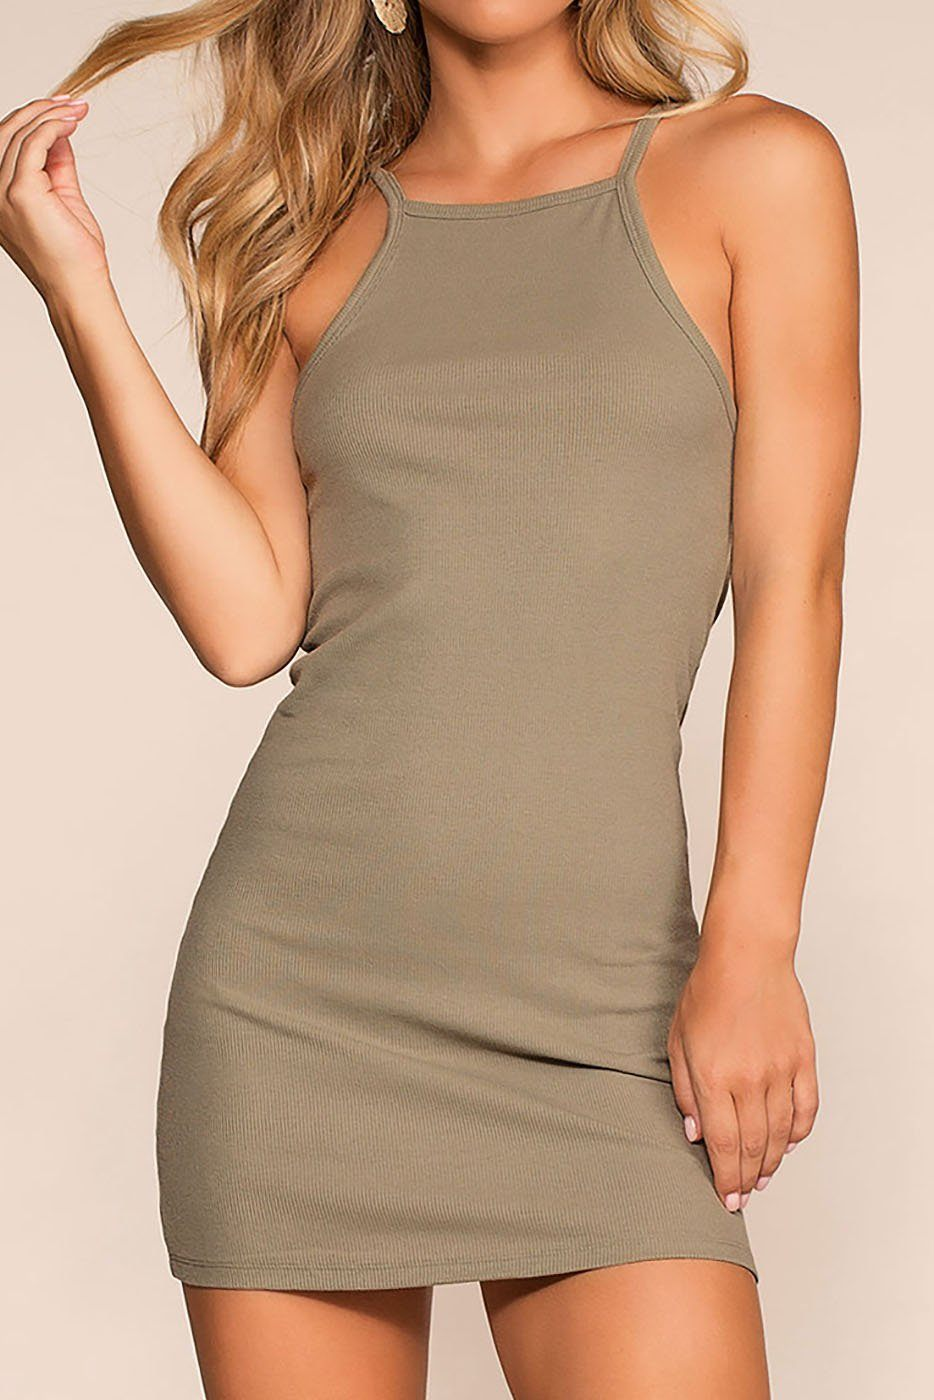 Two Please Bodycon Dress - Sage | favlux